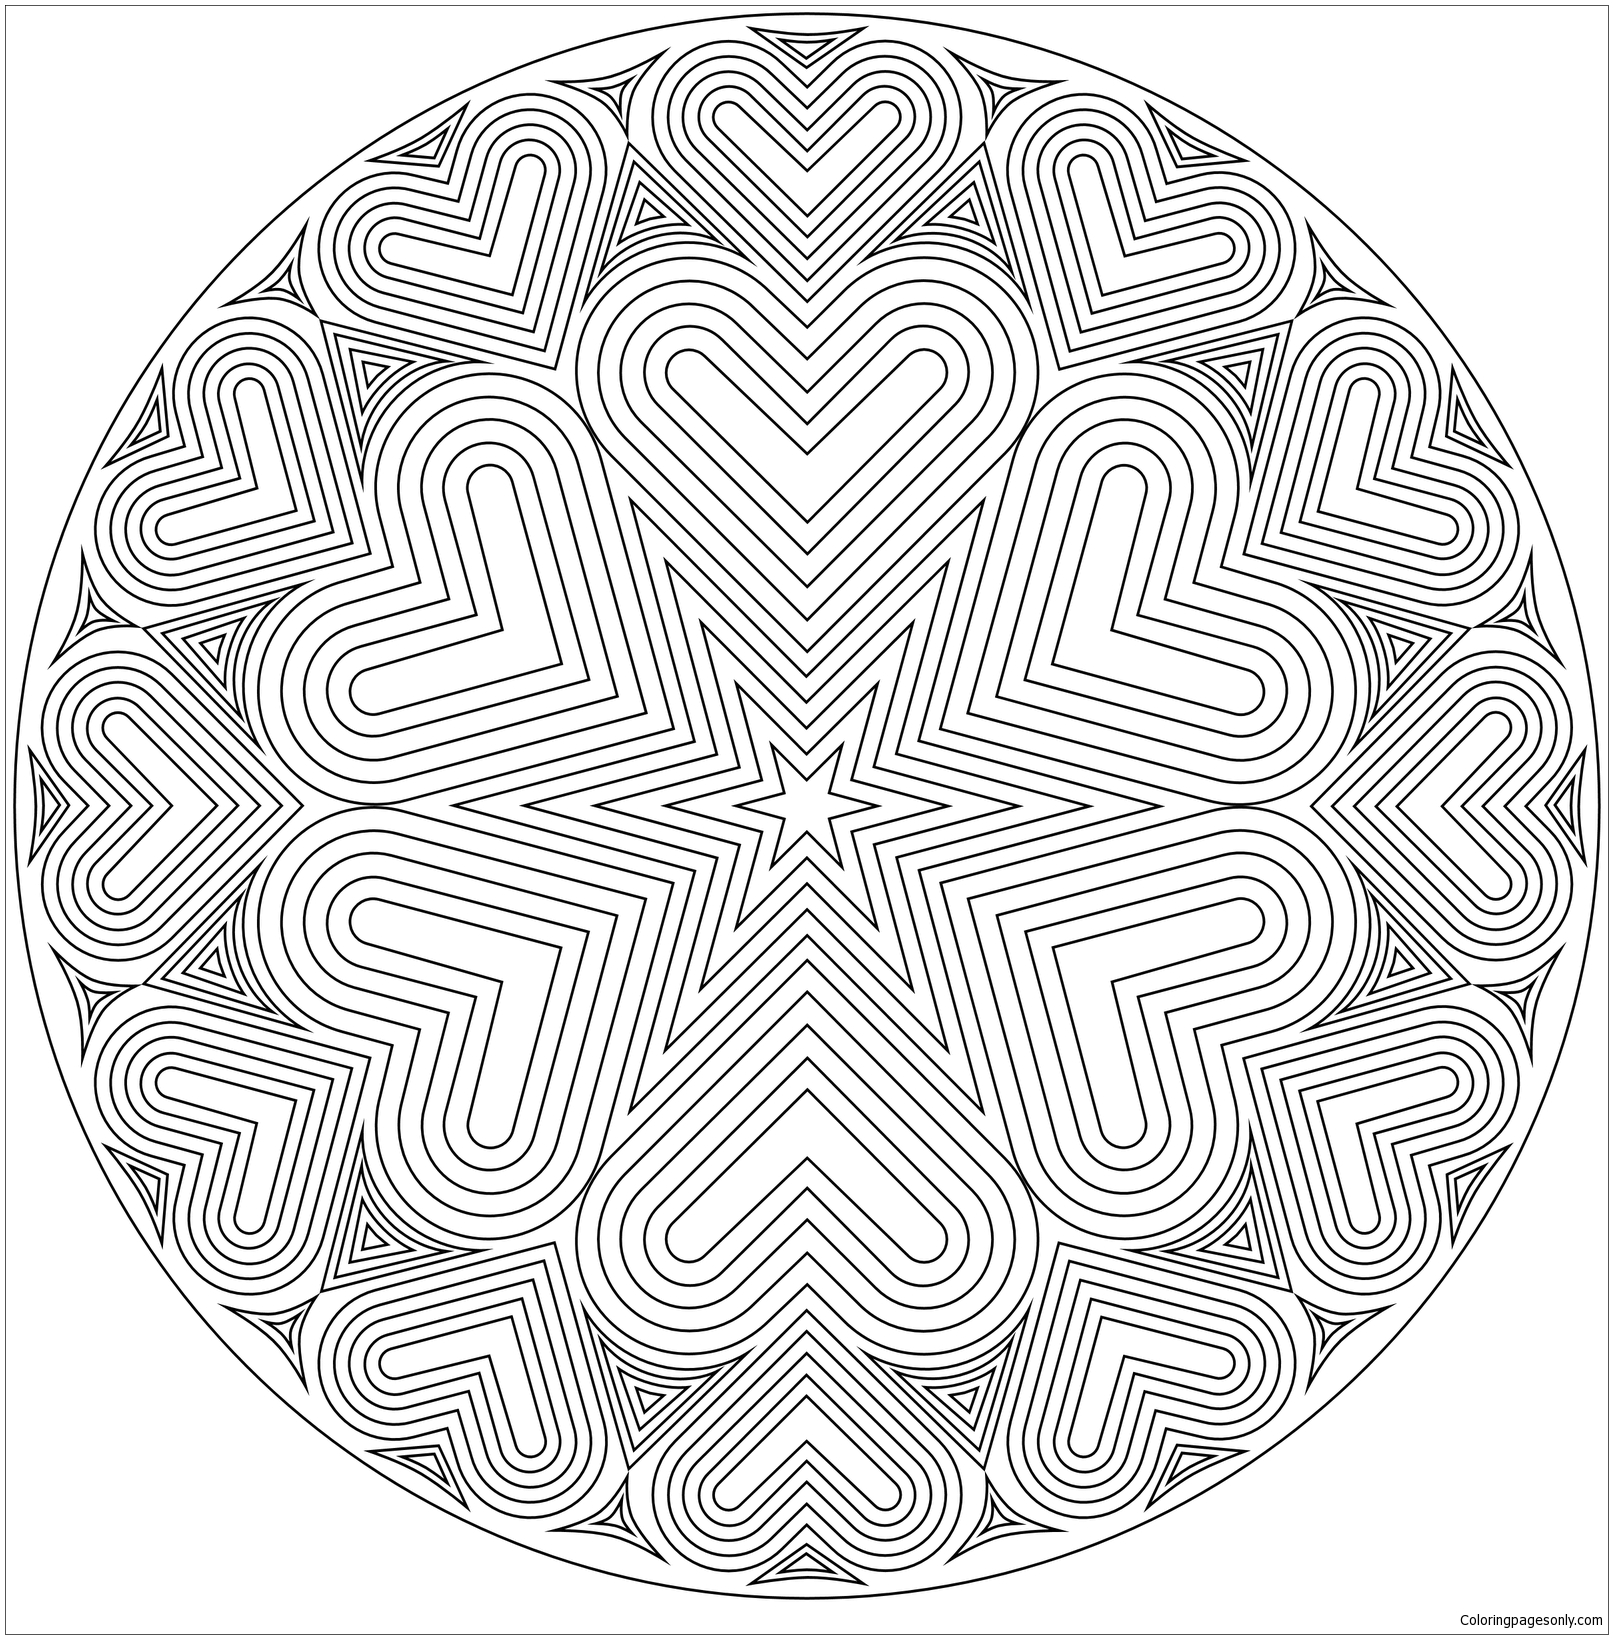 Bullseye Heart Mandala Coloring Page Free Coloring Pages Online